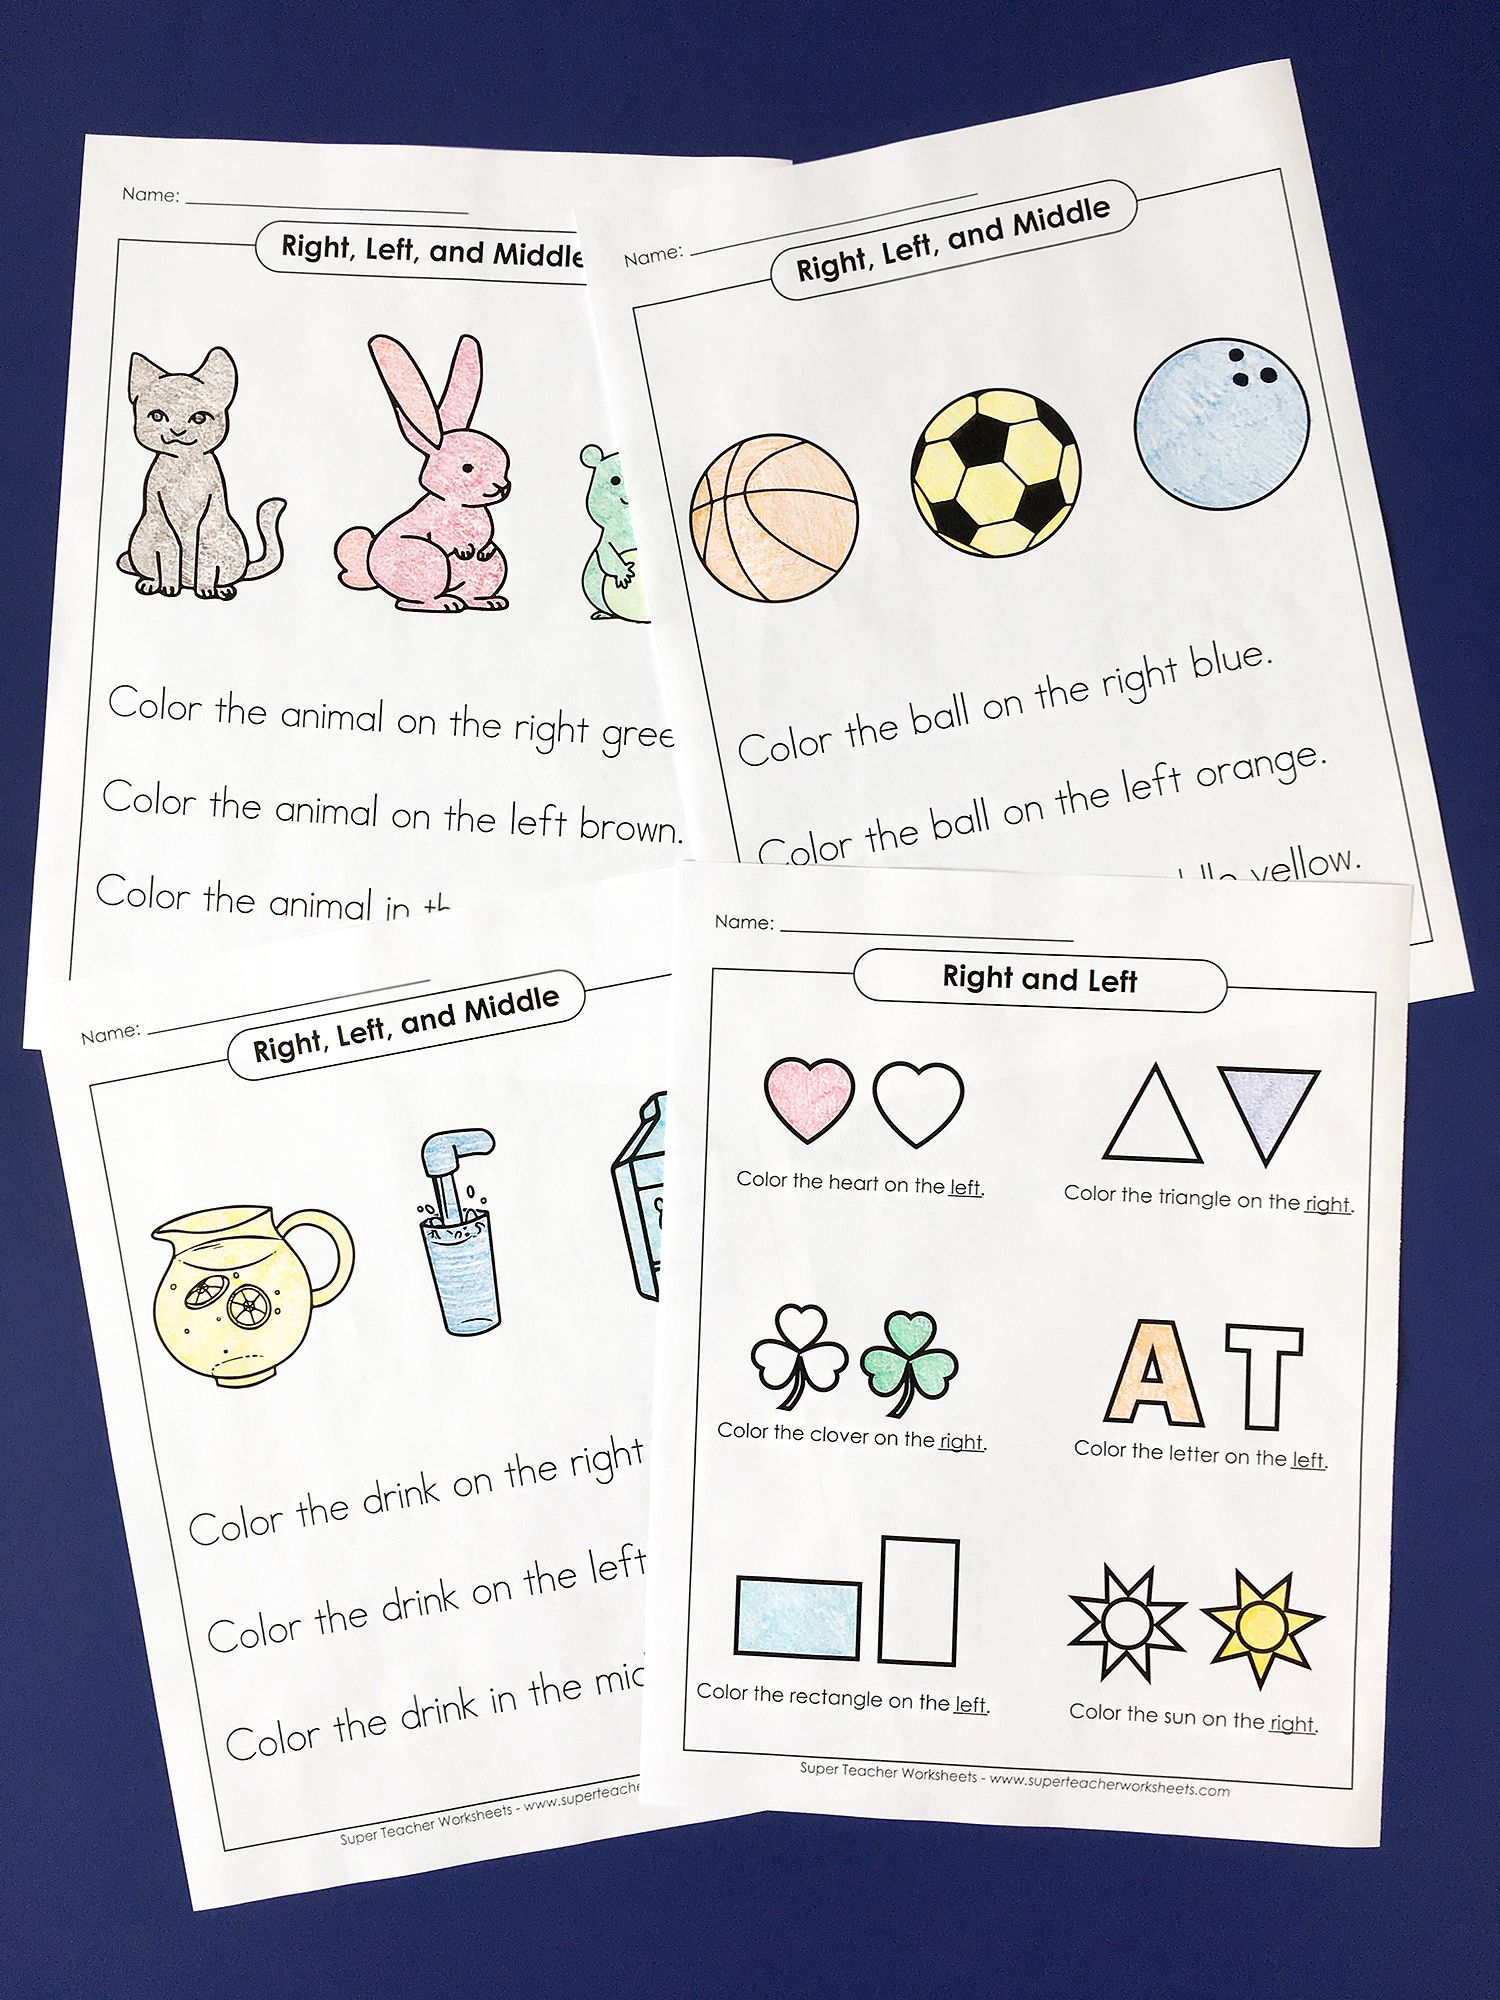 Did you know Super Teacher Worksheets has activities for preschool ...